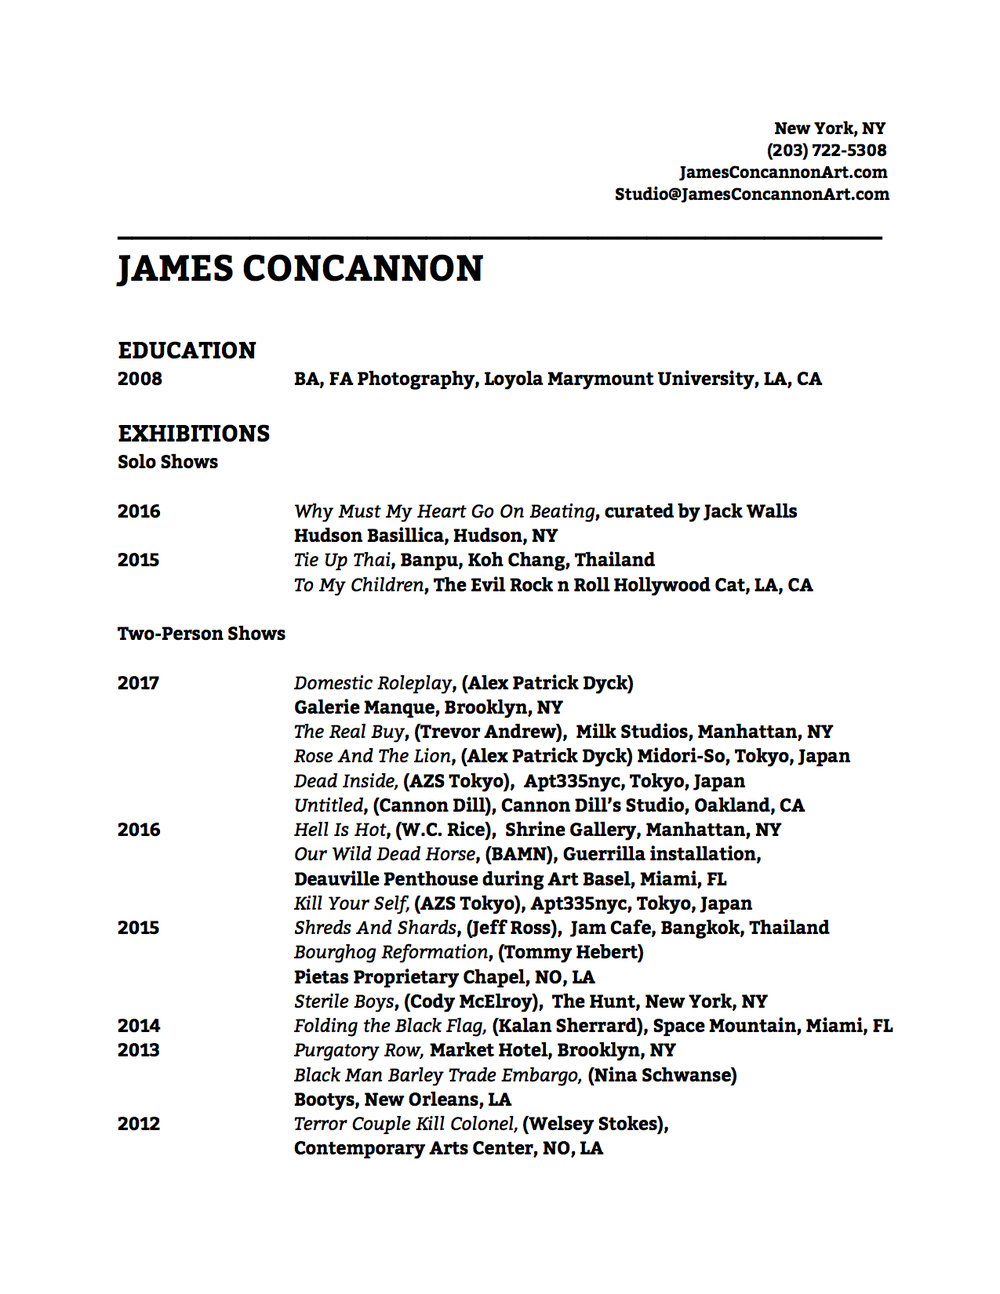 James_Concannon_CV pg 1.jpg